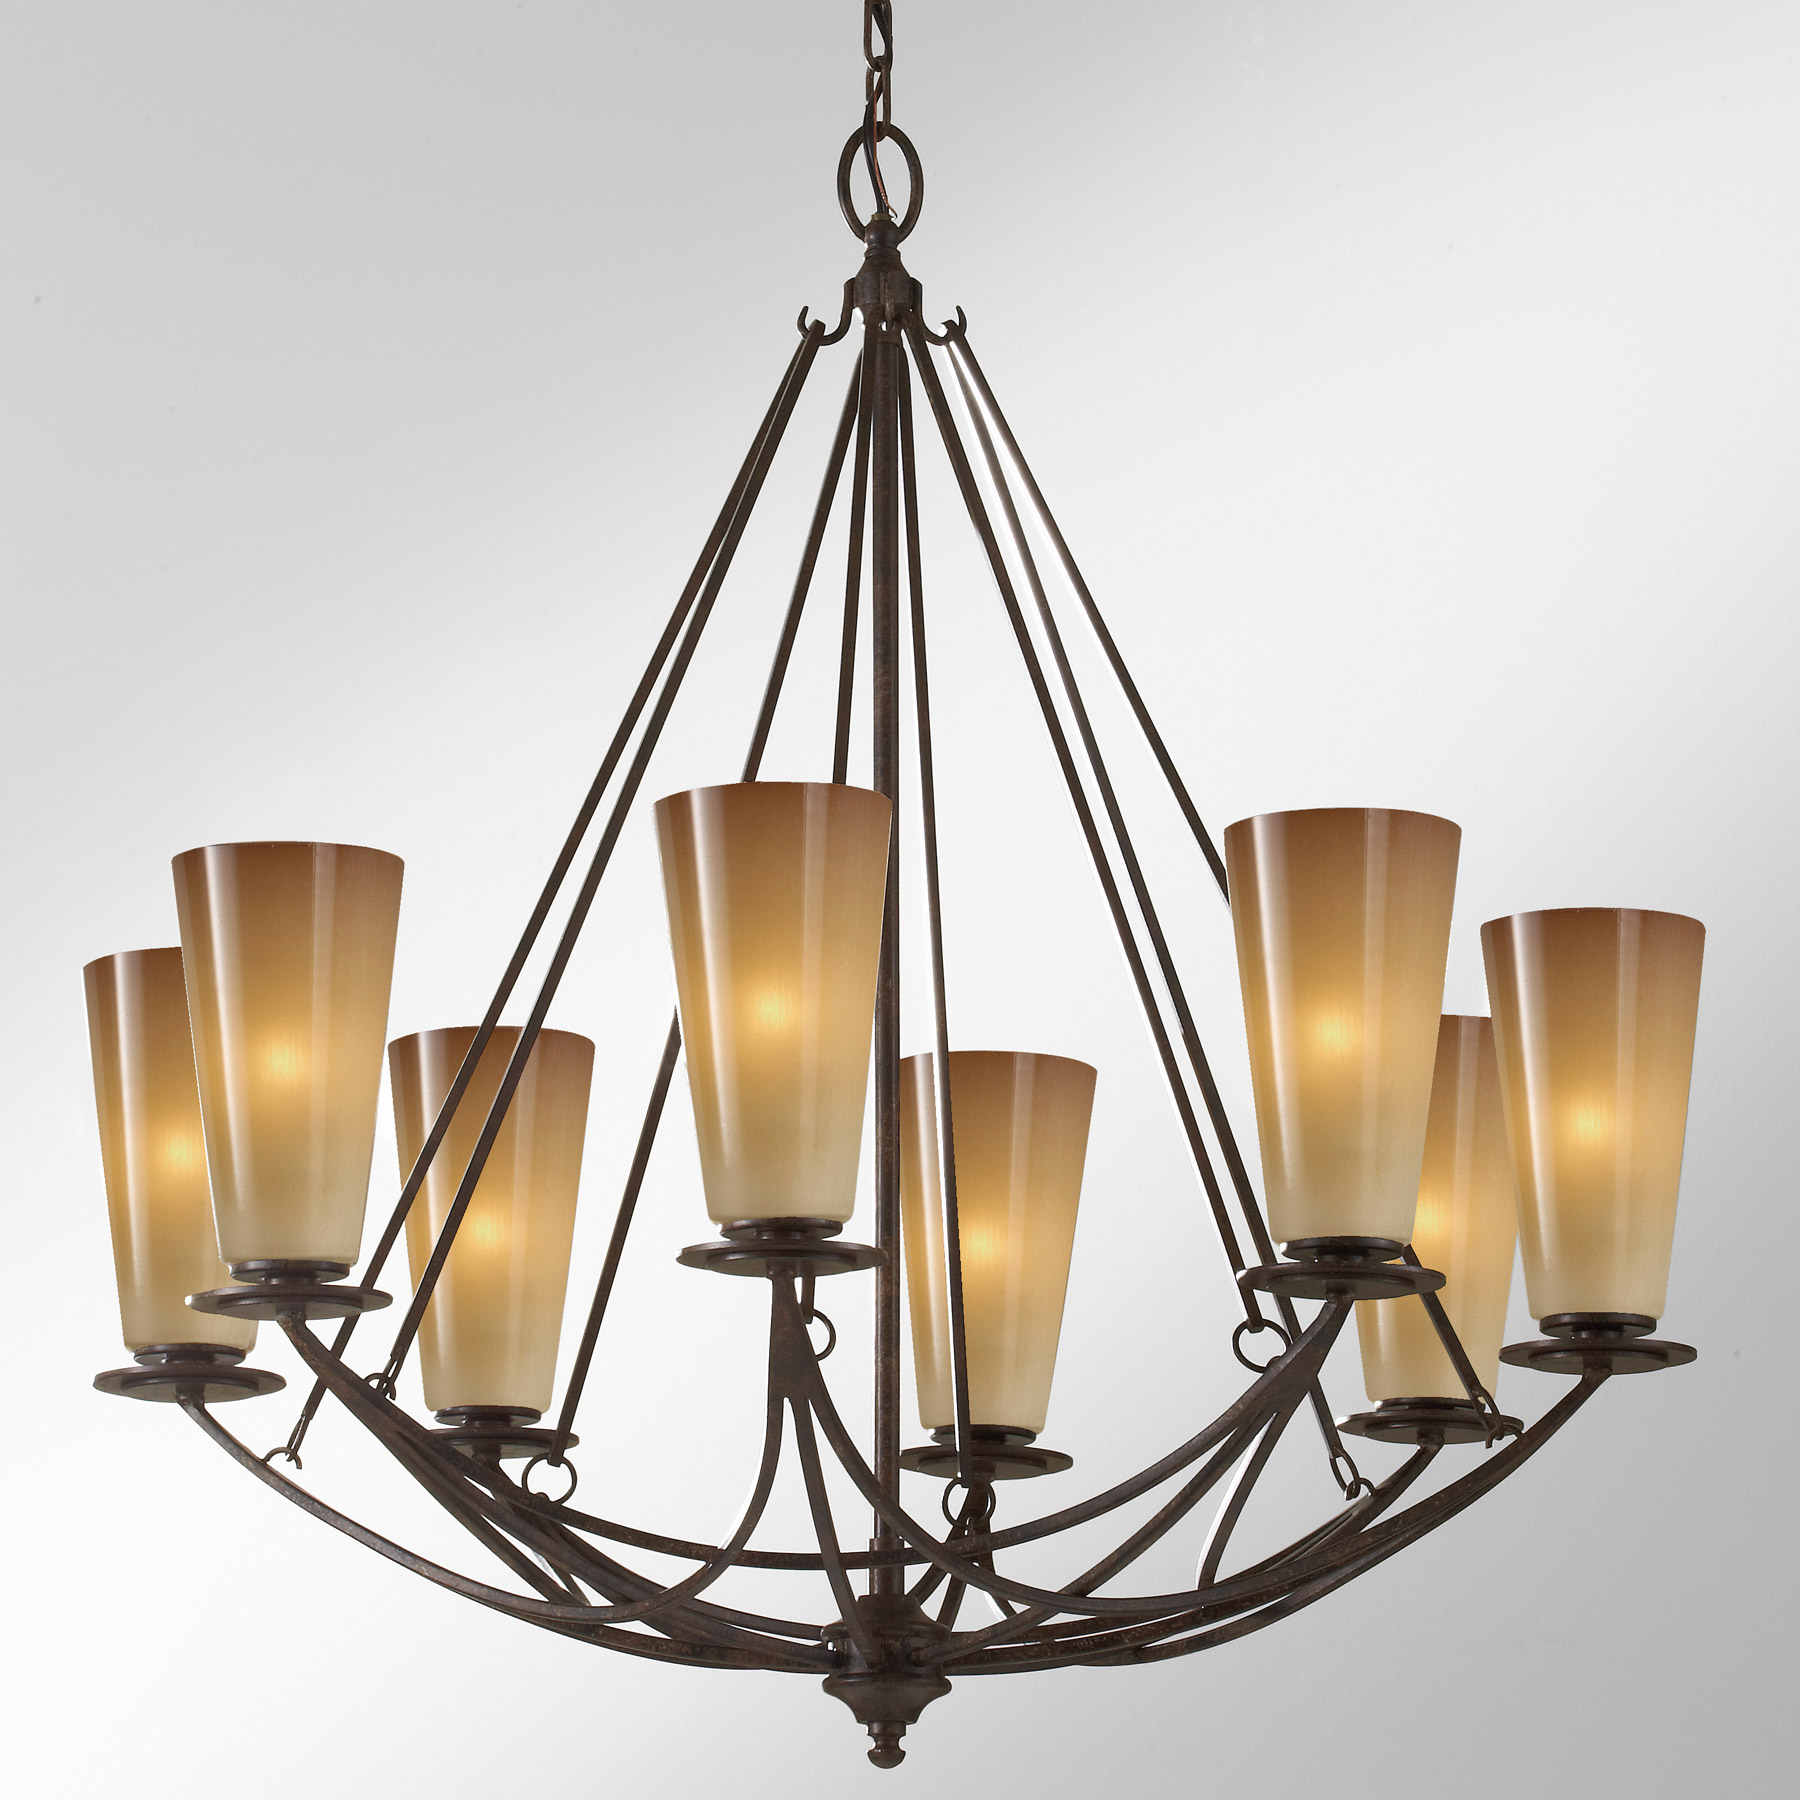 Murray Feiss F2606 8mbz El Nido Eight Light Chandelier